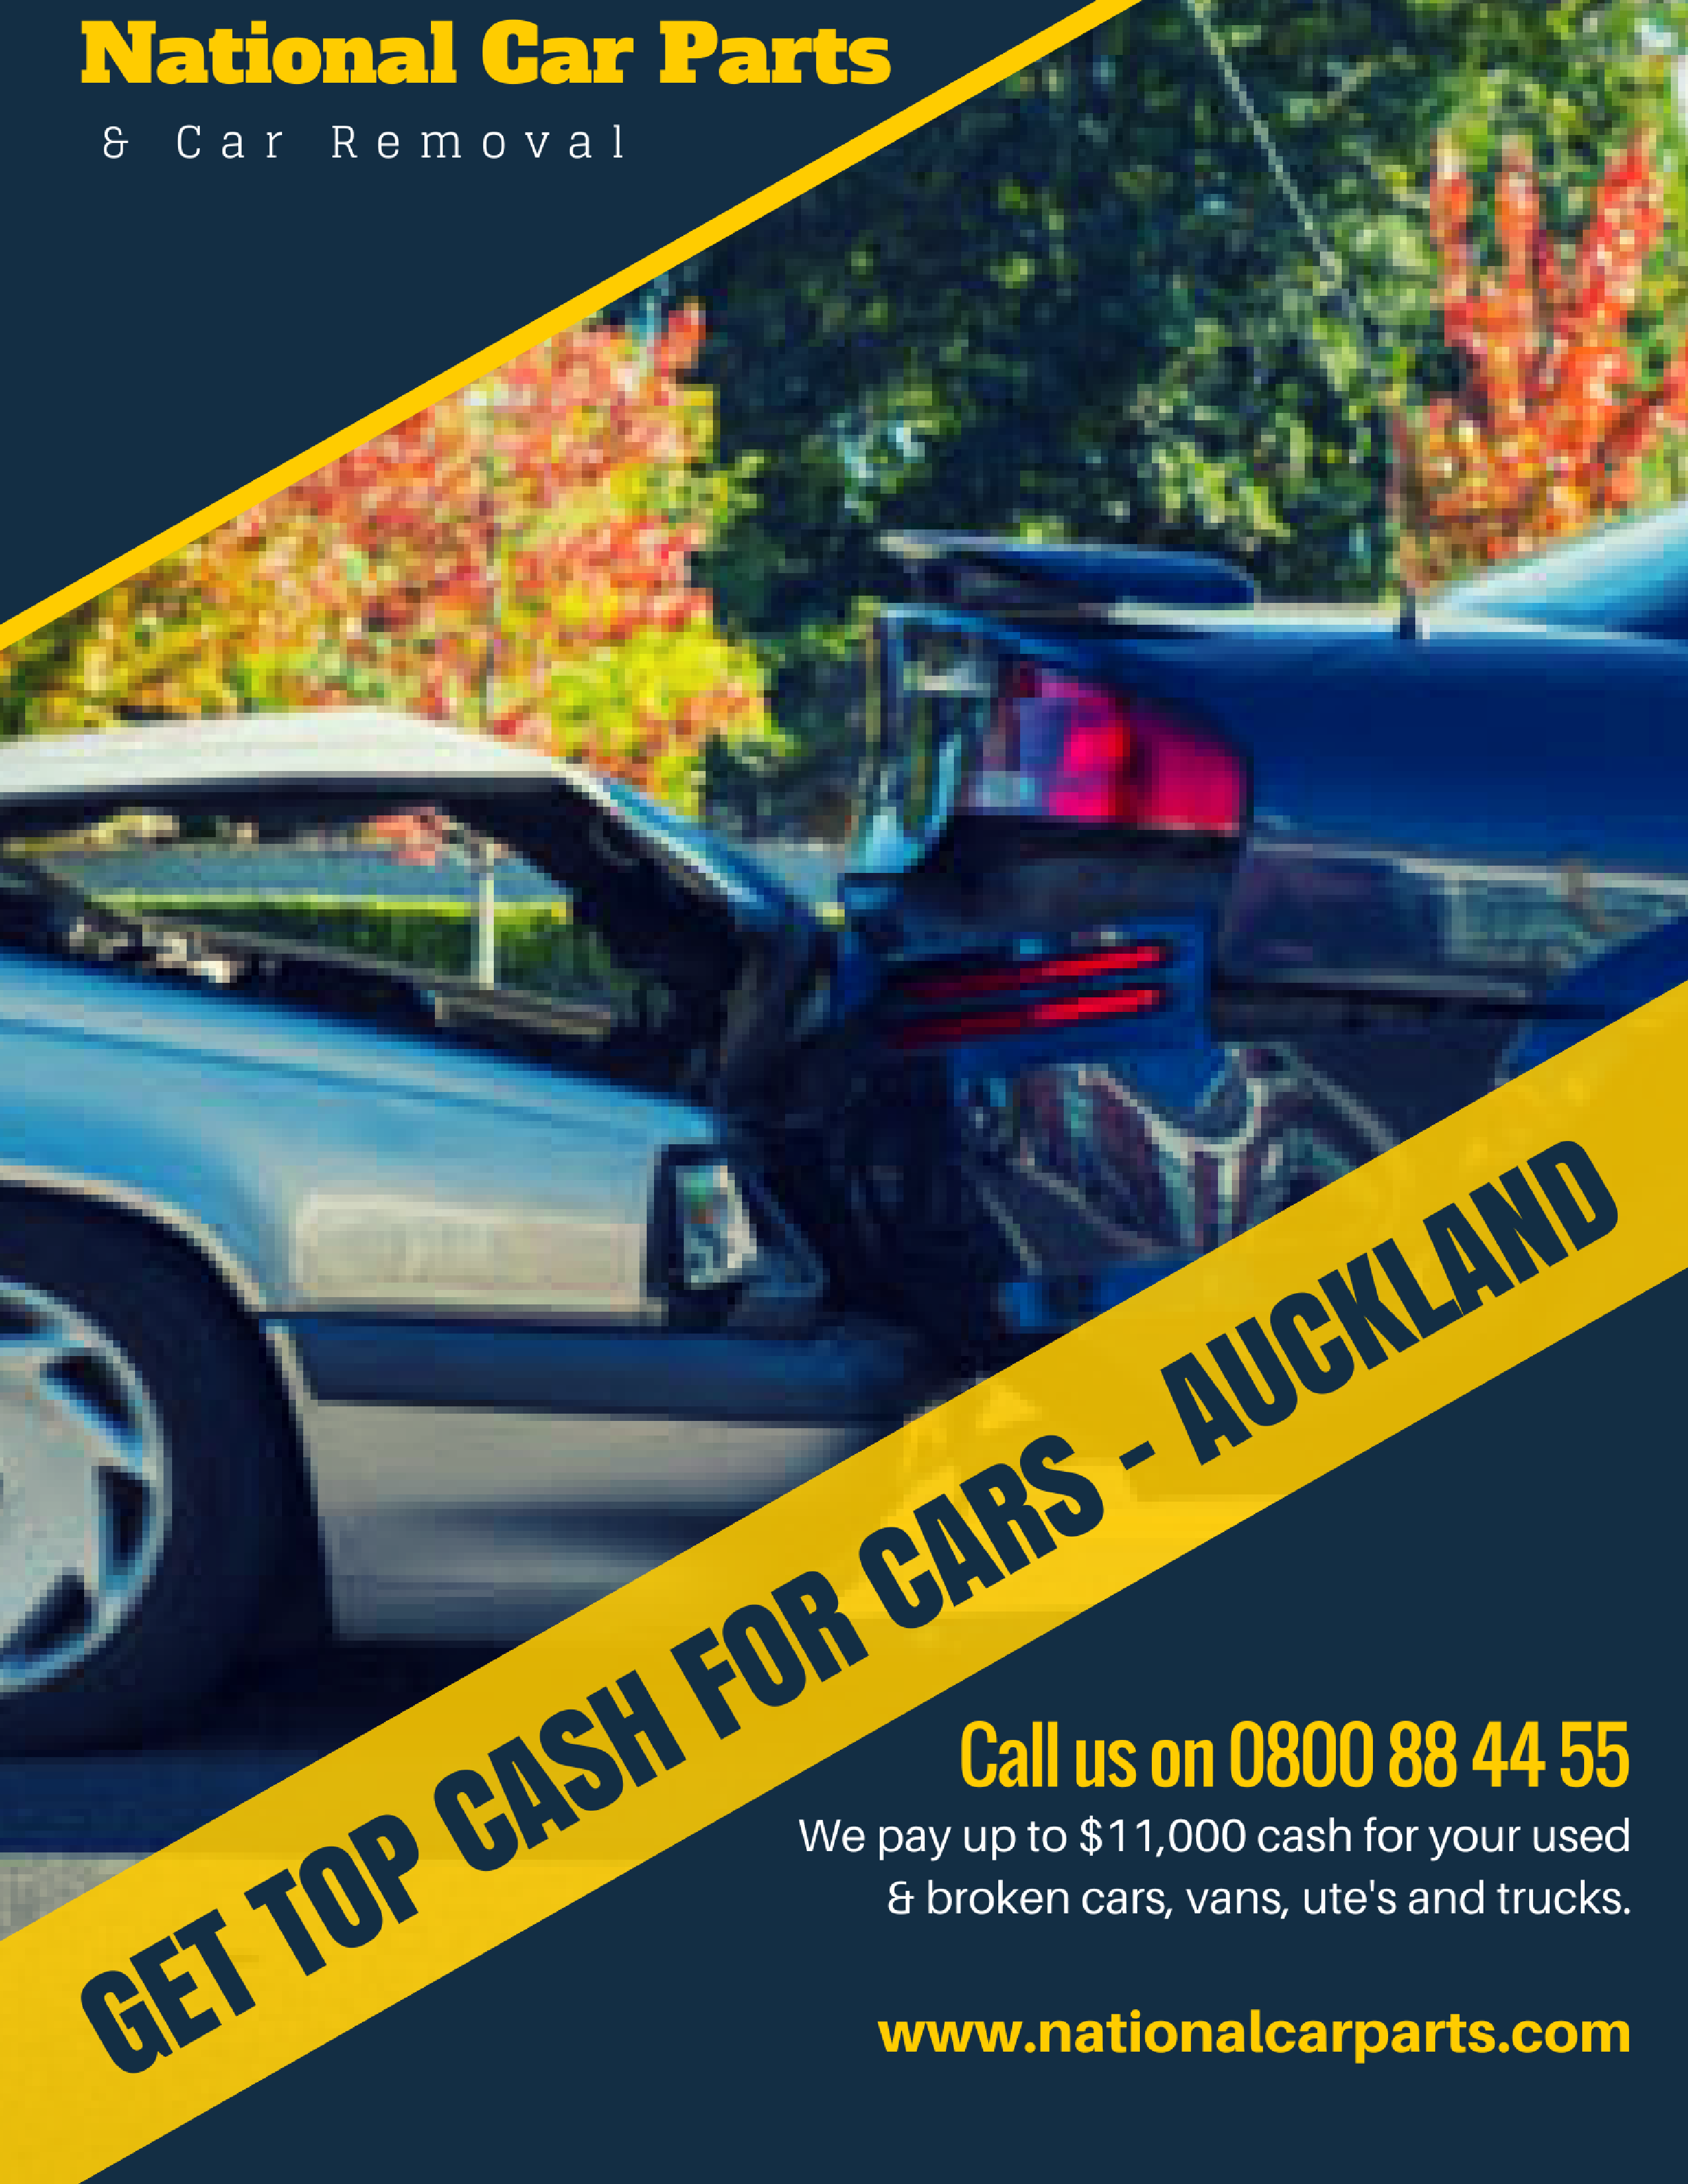 Scrap Car Removal Auckland Scrap Car Removal Auckland offers you ...